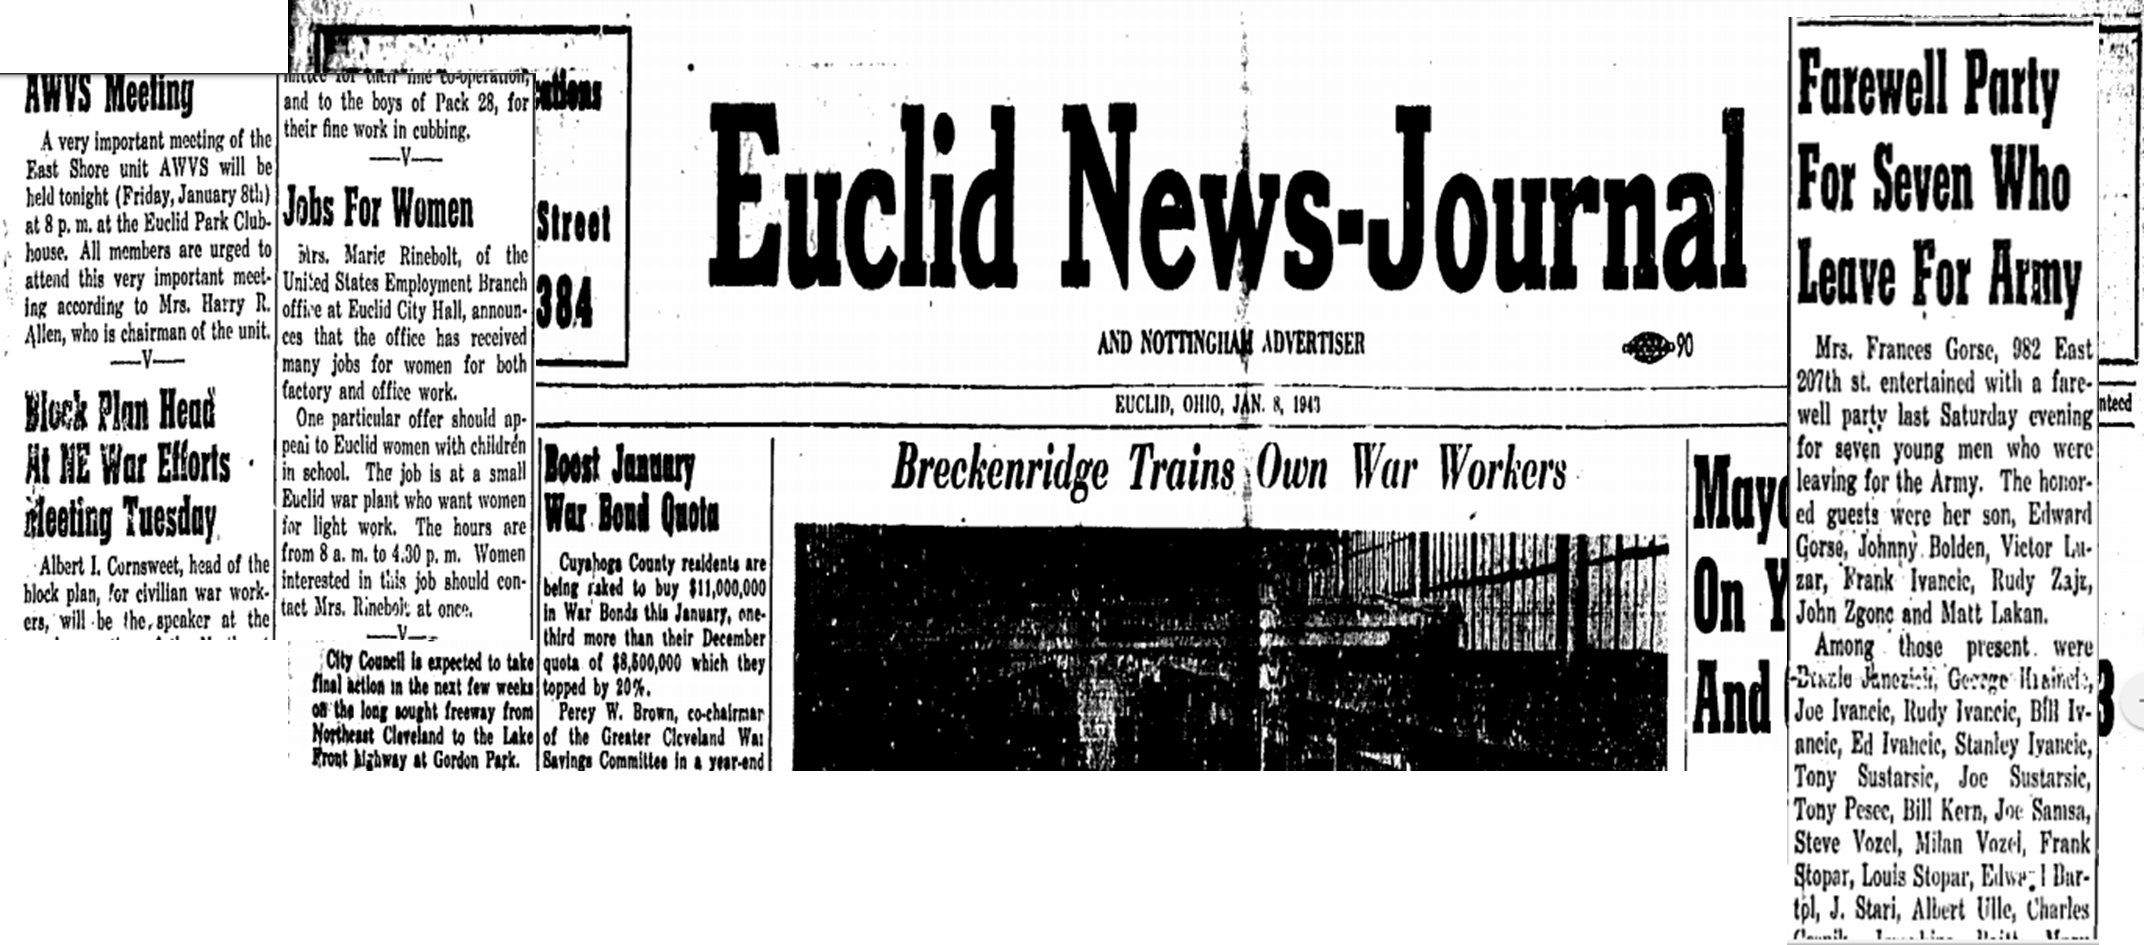 Almost every news item on the front page of this Jan 8, 1943 issue of the Euclid News Journal (OH) has to do with the war. It's easy to see how the war affected everyday life of this small Ohio city on the shores of Lake Erie. Issues of this paper are searchable at the Euclid Public Library website (click image to view more issues).